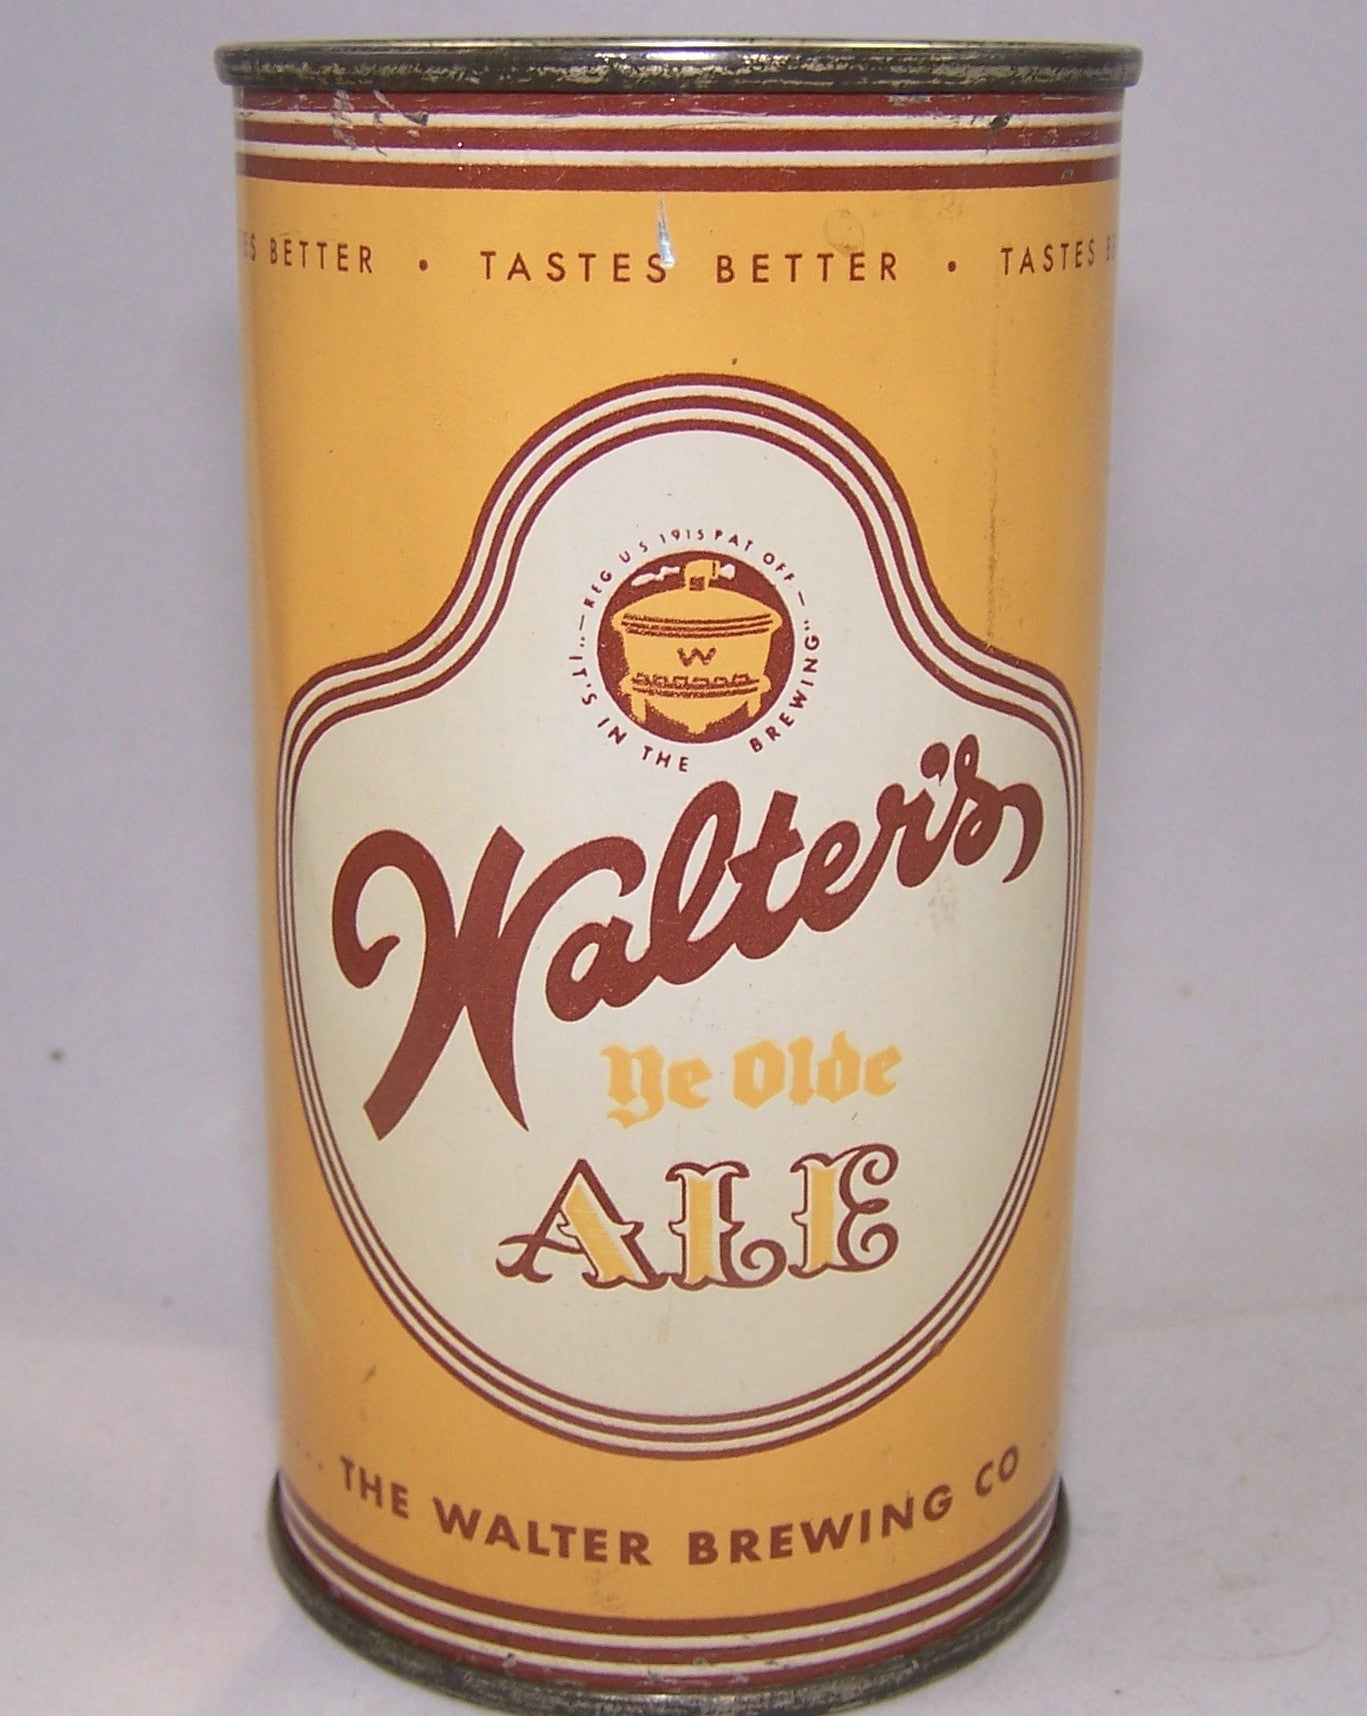 Walter's Ye Olde Ale, USBC 144-13, Grade 1 to 1/1+ Sold on 07/12/16